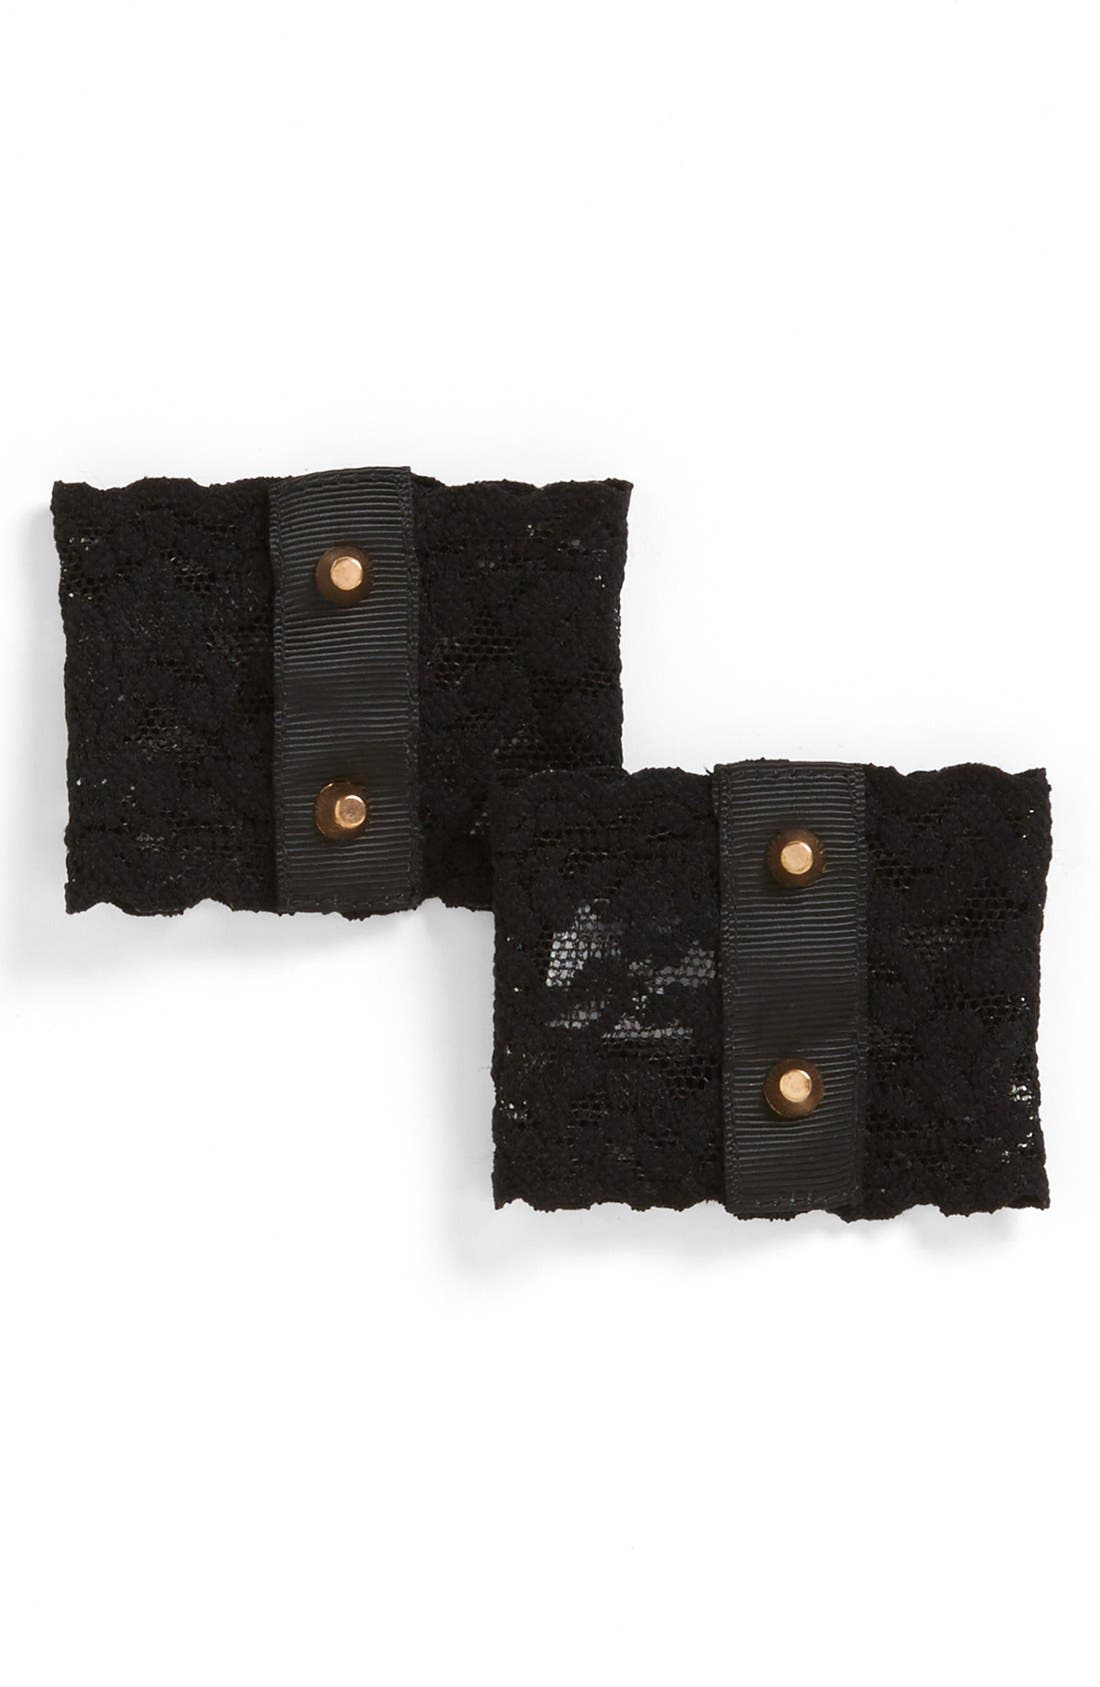 Alternate Image 3  - Hanky Panky 'After Midnight' Studded Cuffs